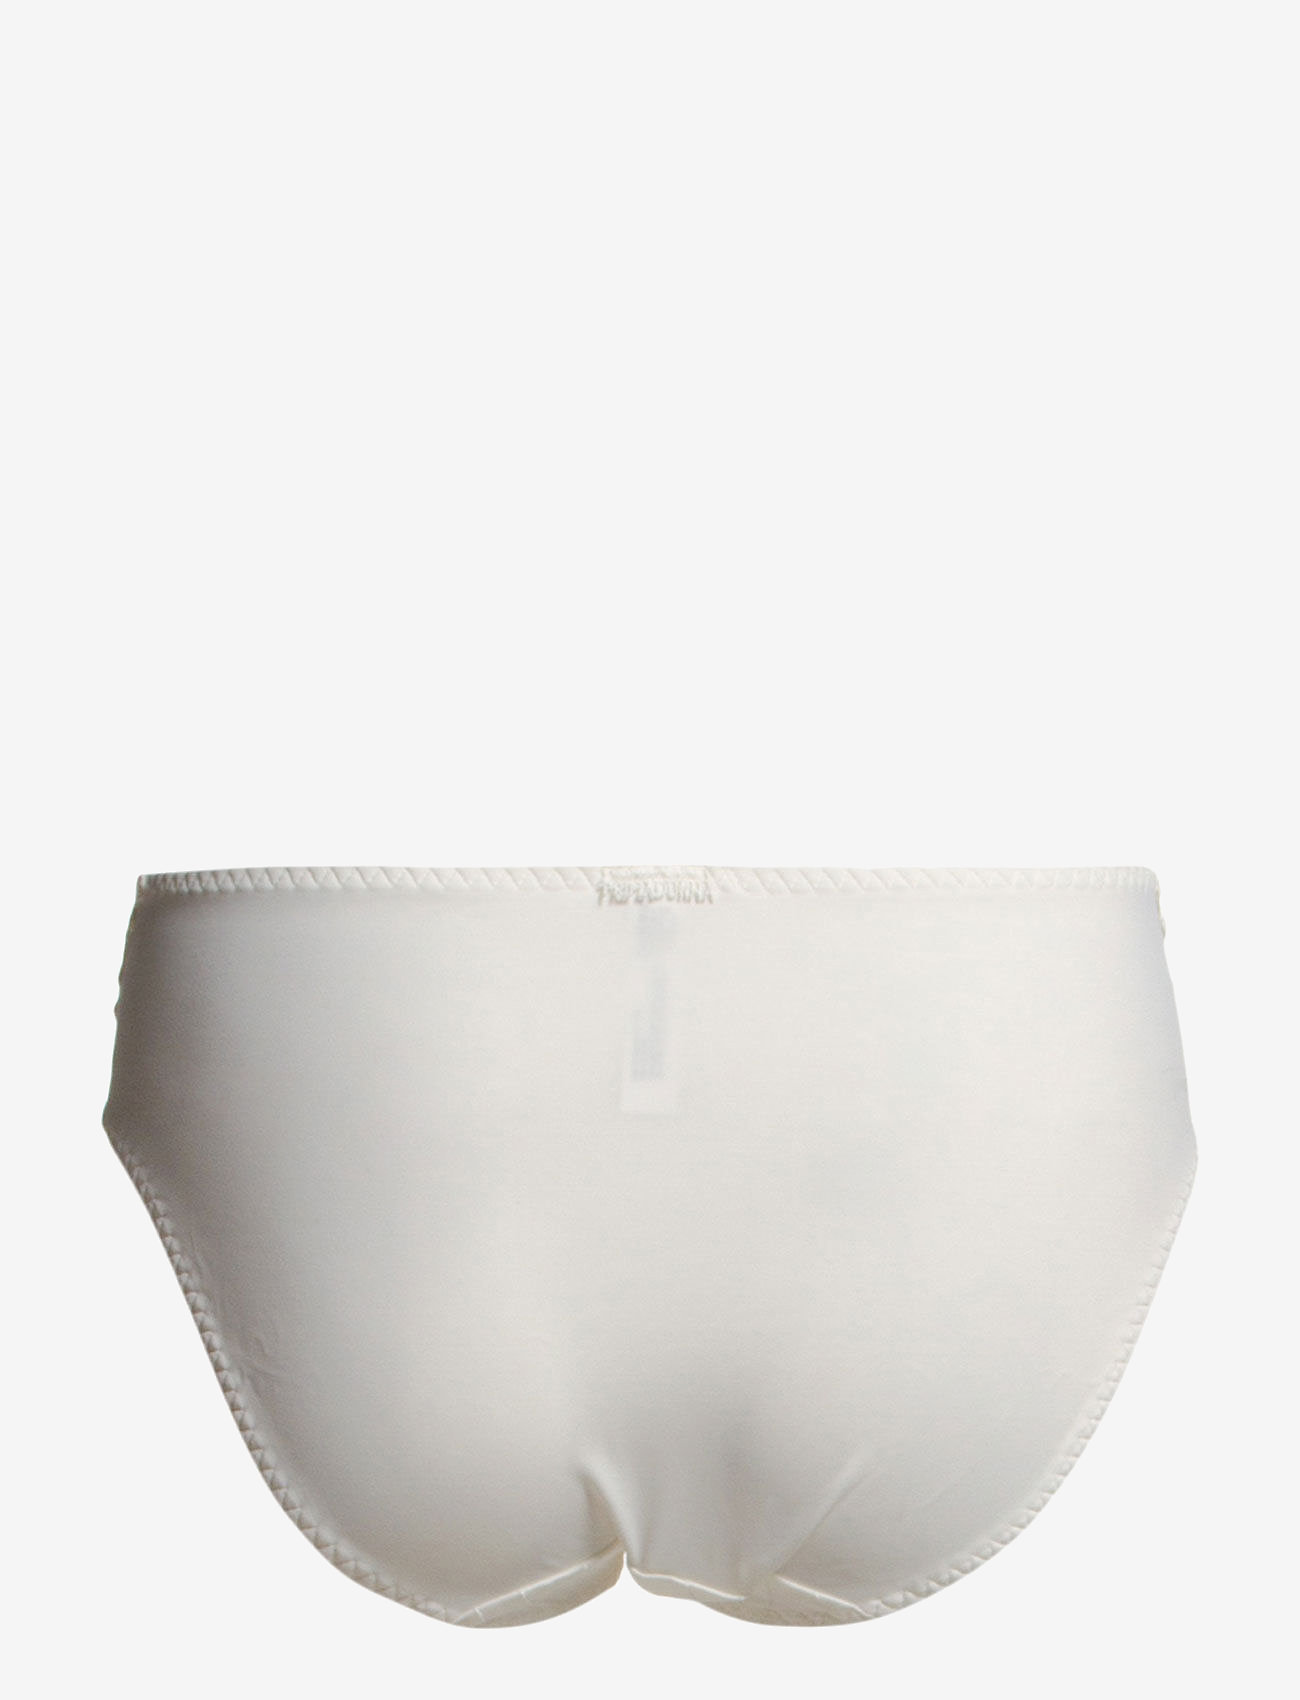 Primadonna - DEAUVILLE FULL BRIEF - hipster & boyshorts - natural/offwhite